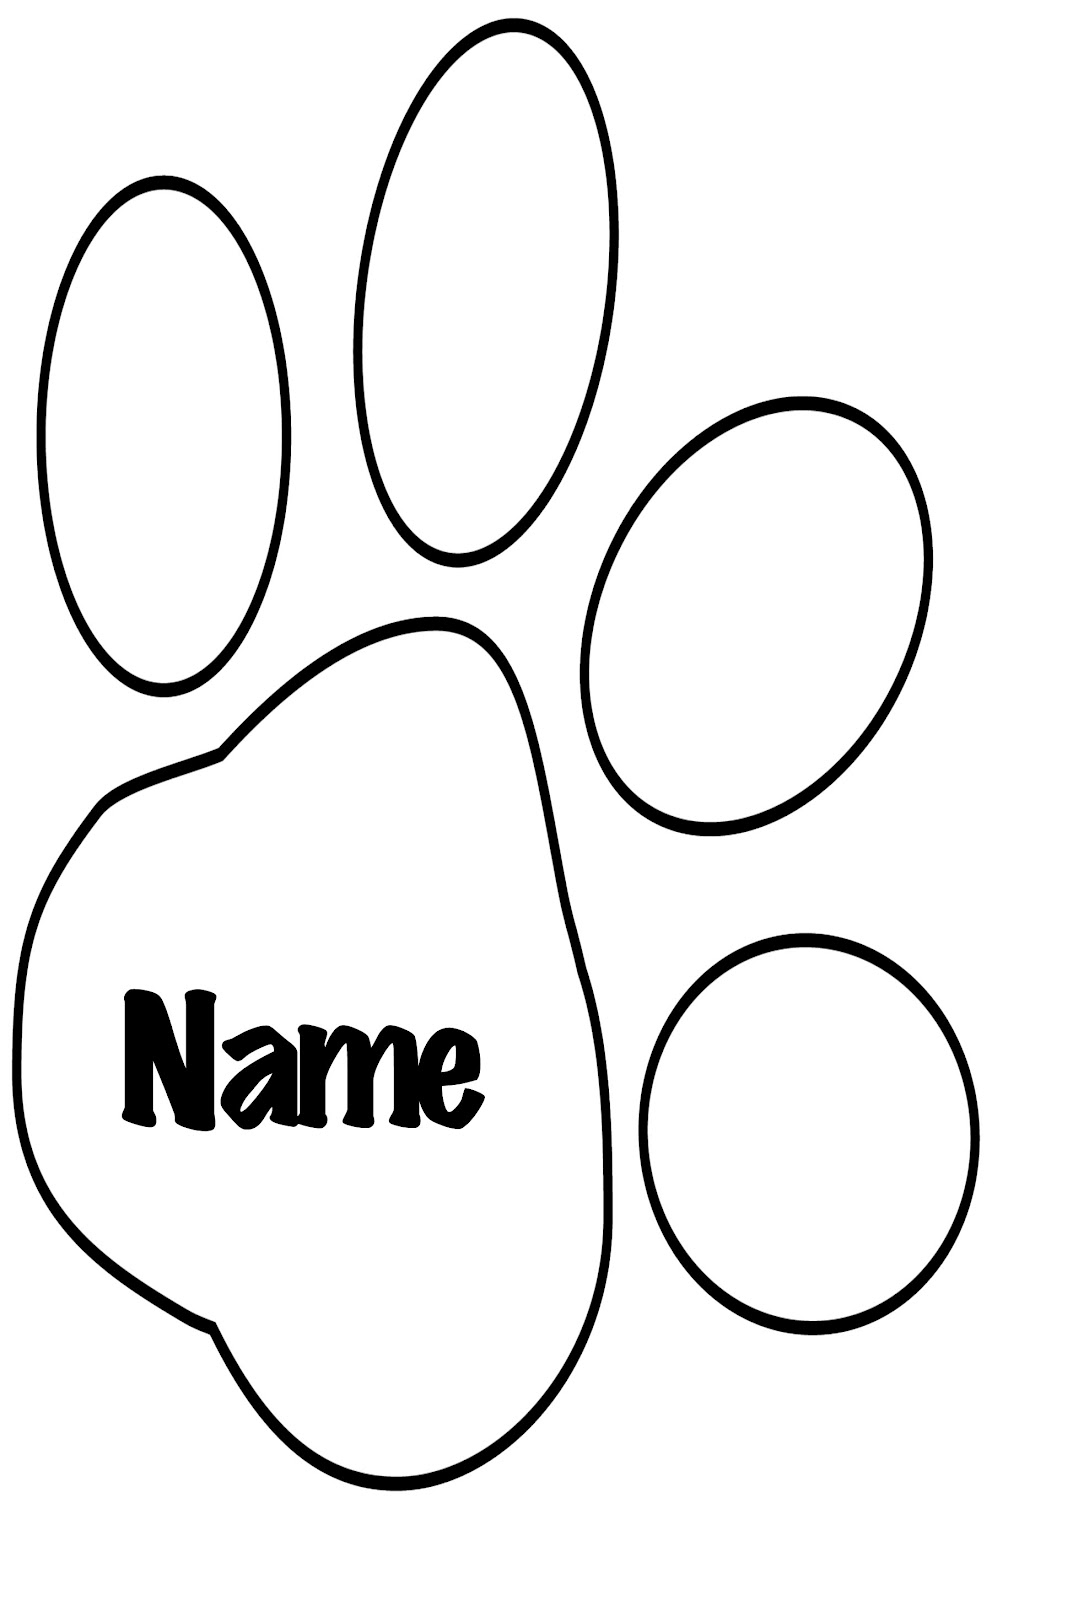 tiger paw coloring page pin by muse printables on printable patterns at page paw tiger coloring